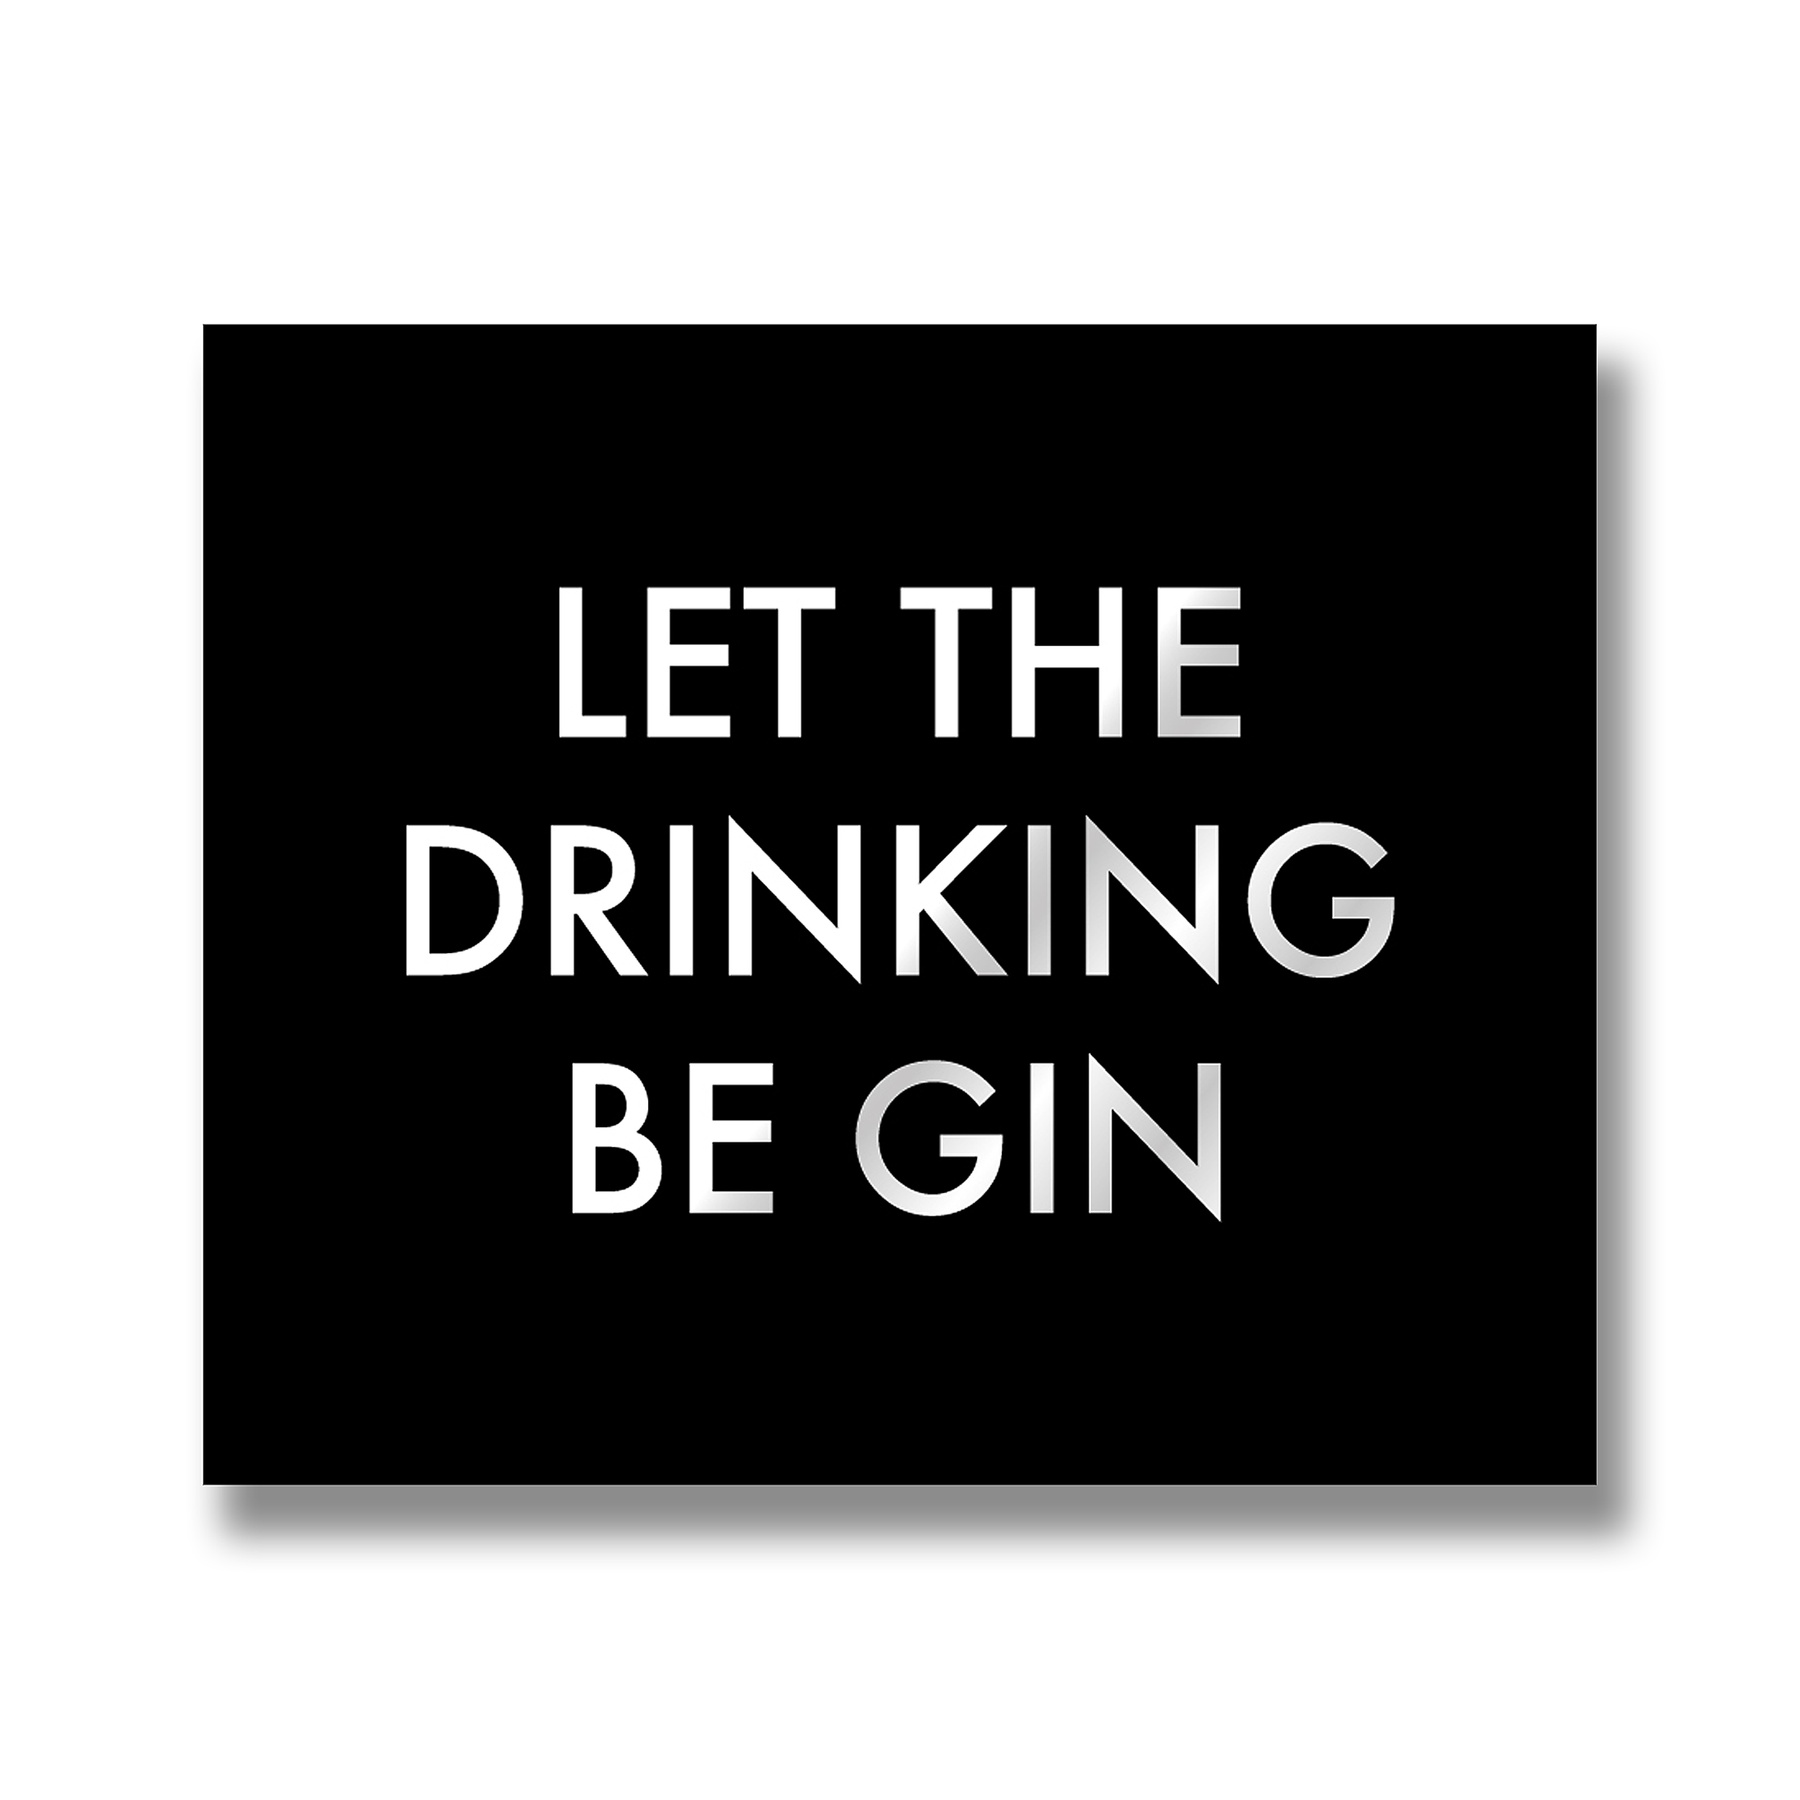 Let The Drinking Be Gin Metallic Detail Plaque - Image 1